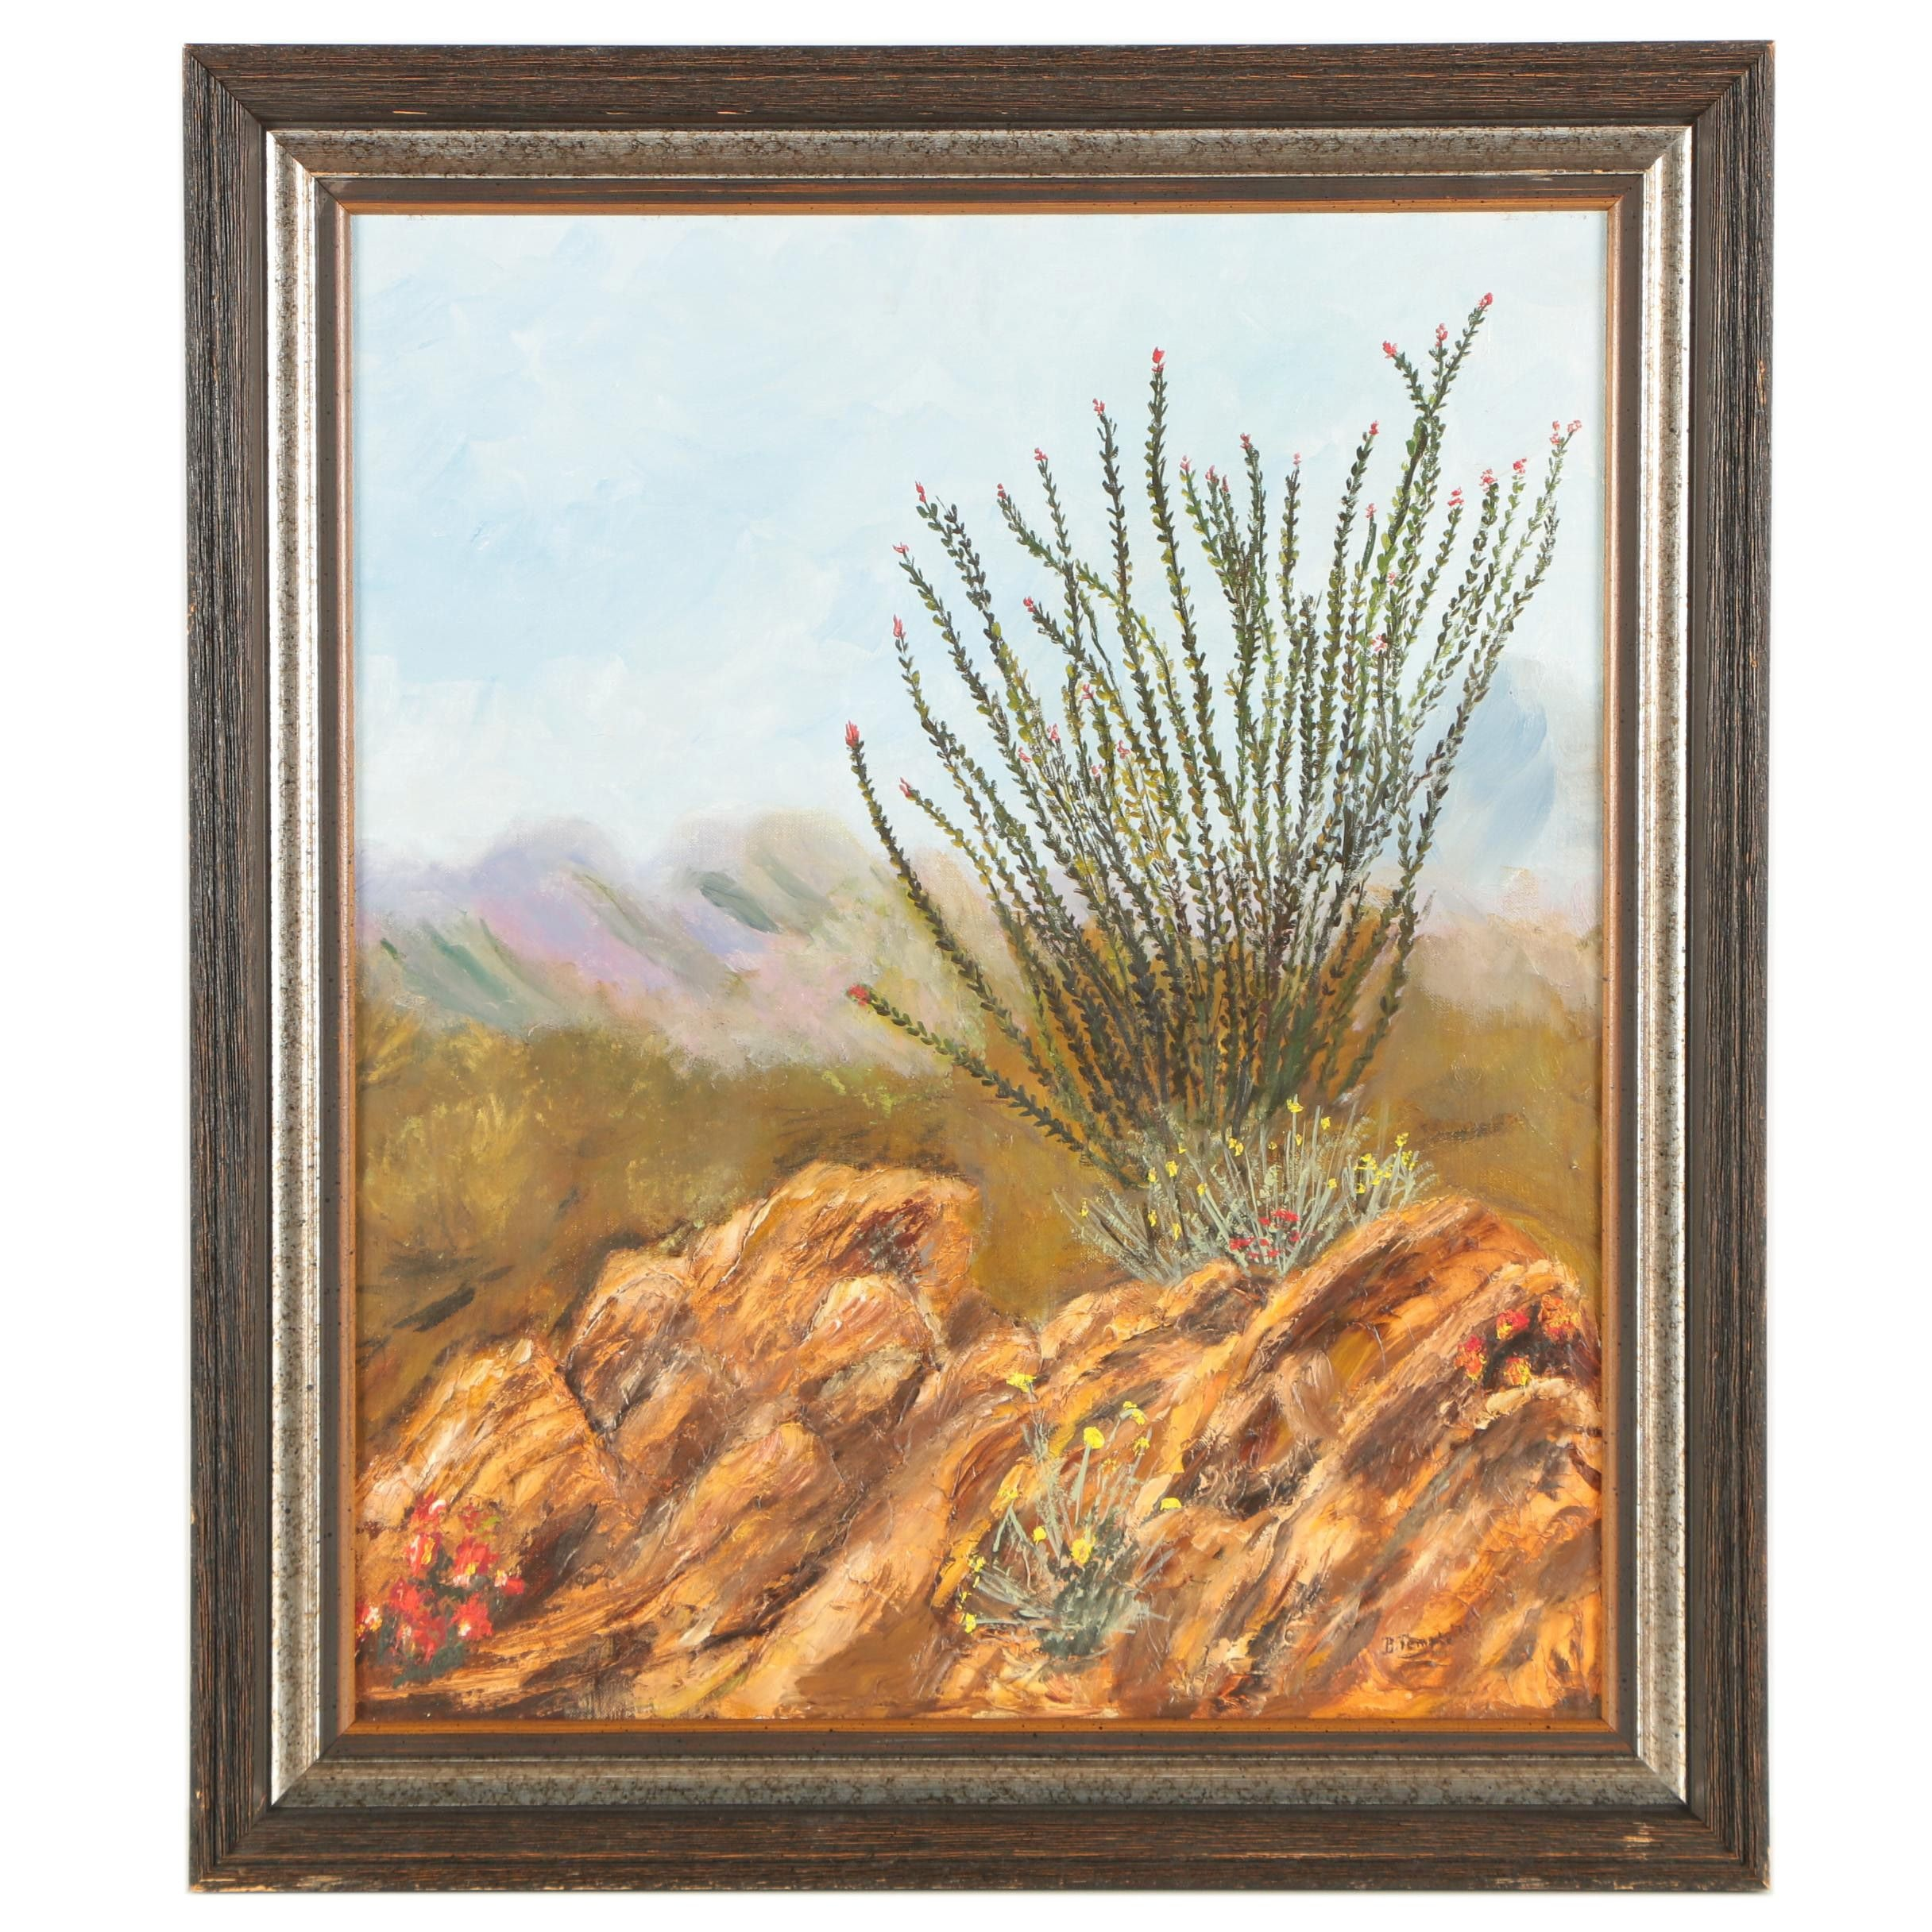 1973 B. Temple Oil Painting